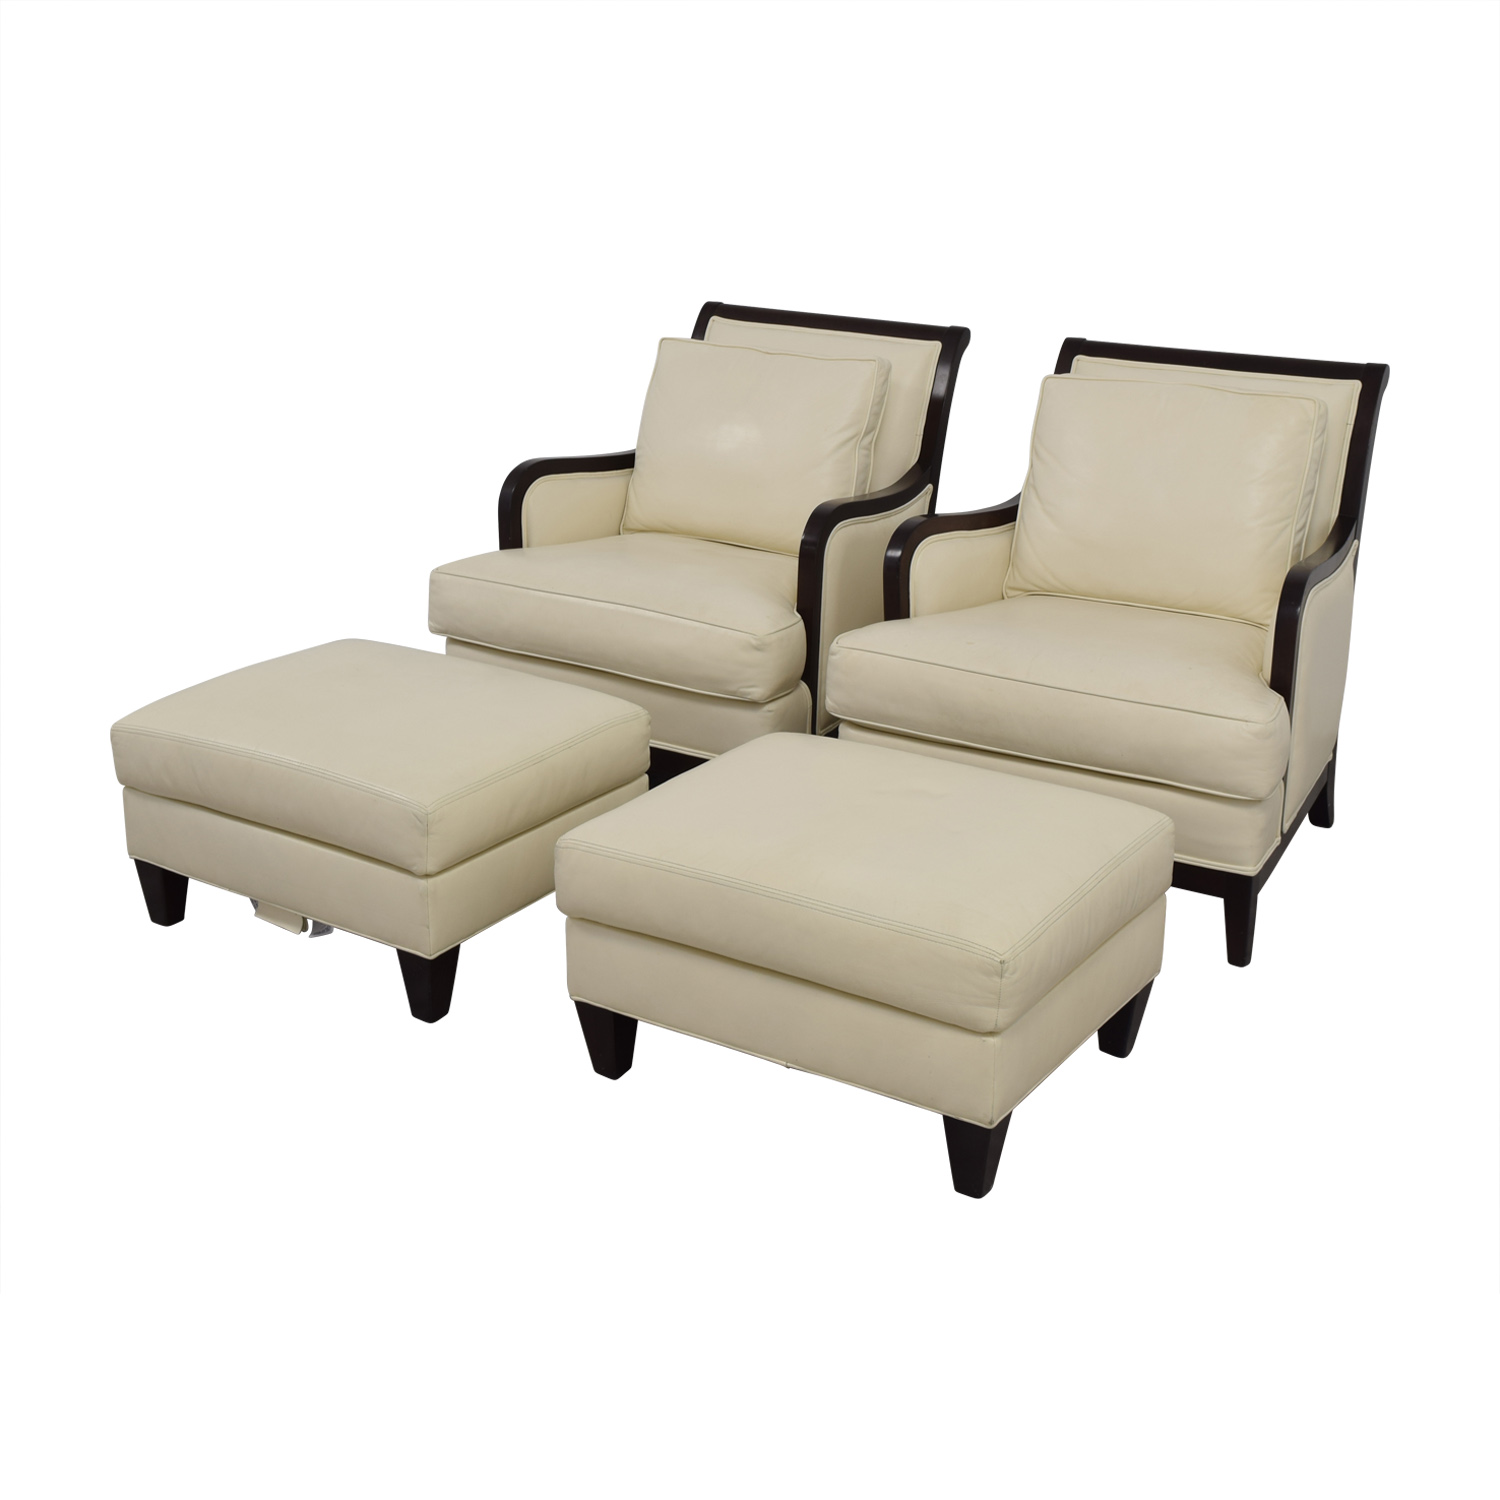 ethan allen leather chair modern high back wing 90 off palma ivory